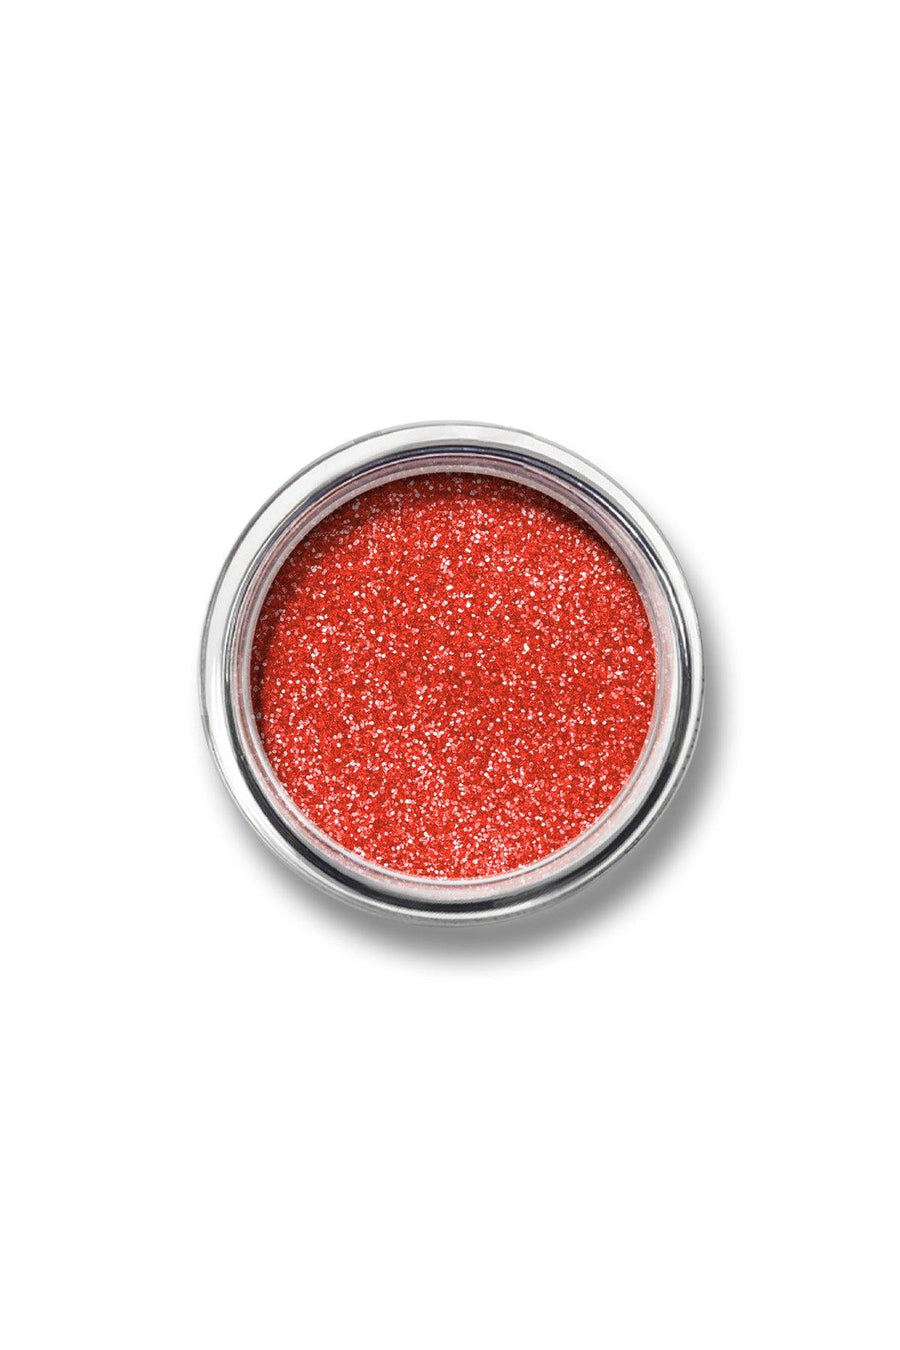 Glitter Powder #21 - Hot Red - Blend Mineral Cosmetics